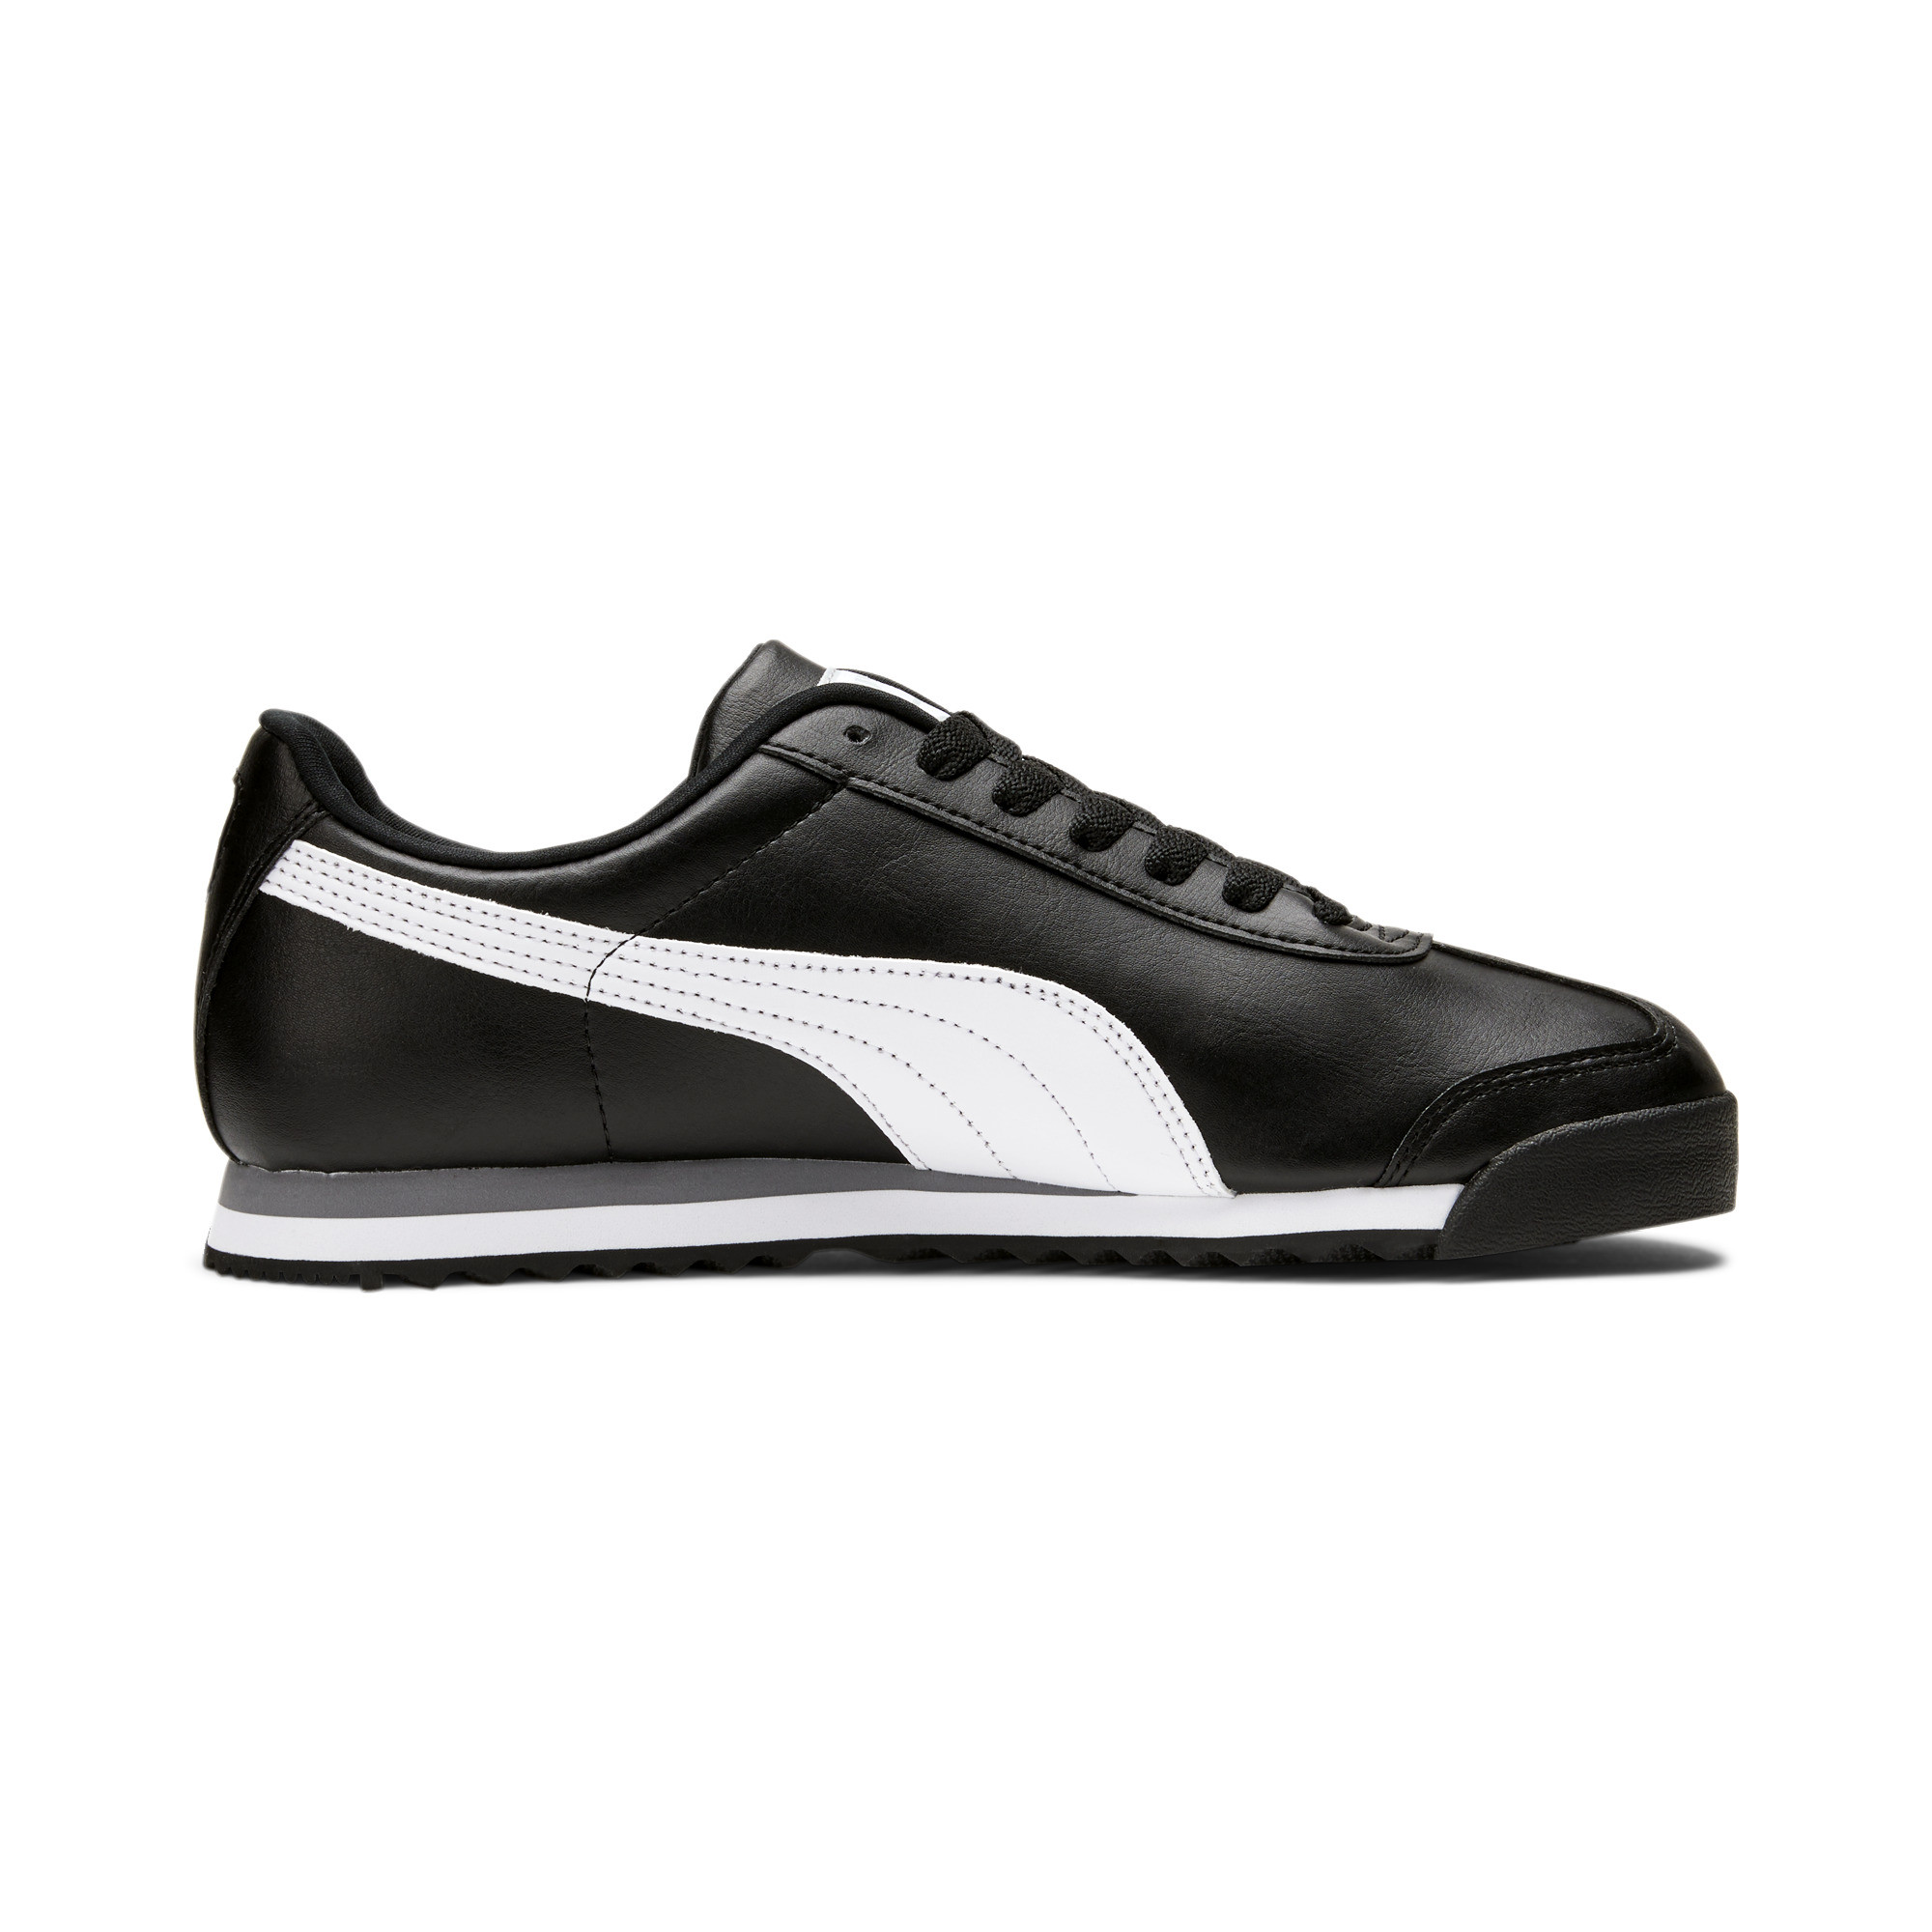 PUMA-Roma-Basic-Men-039-s-Sneakers-Men-Shoe-Sport-Shoe thumbnail 16